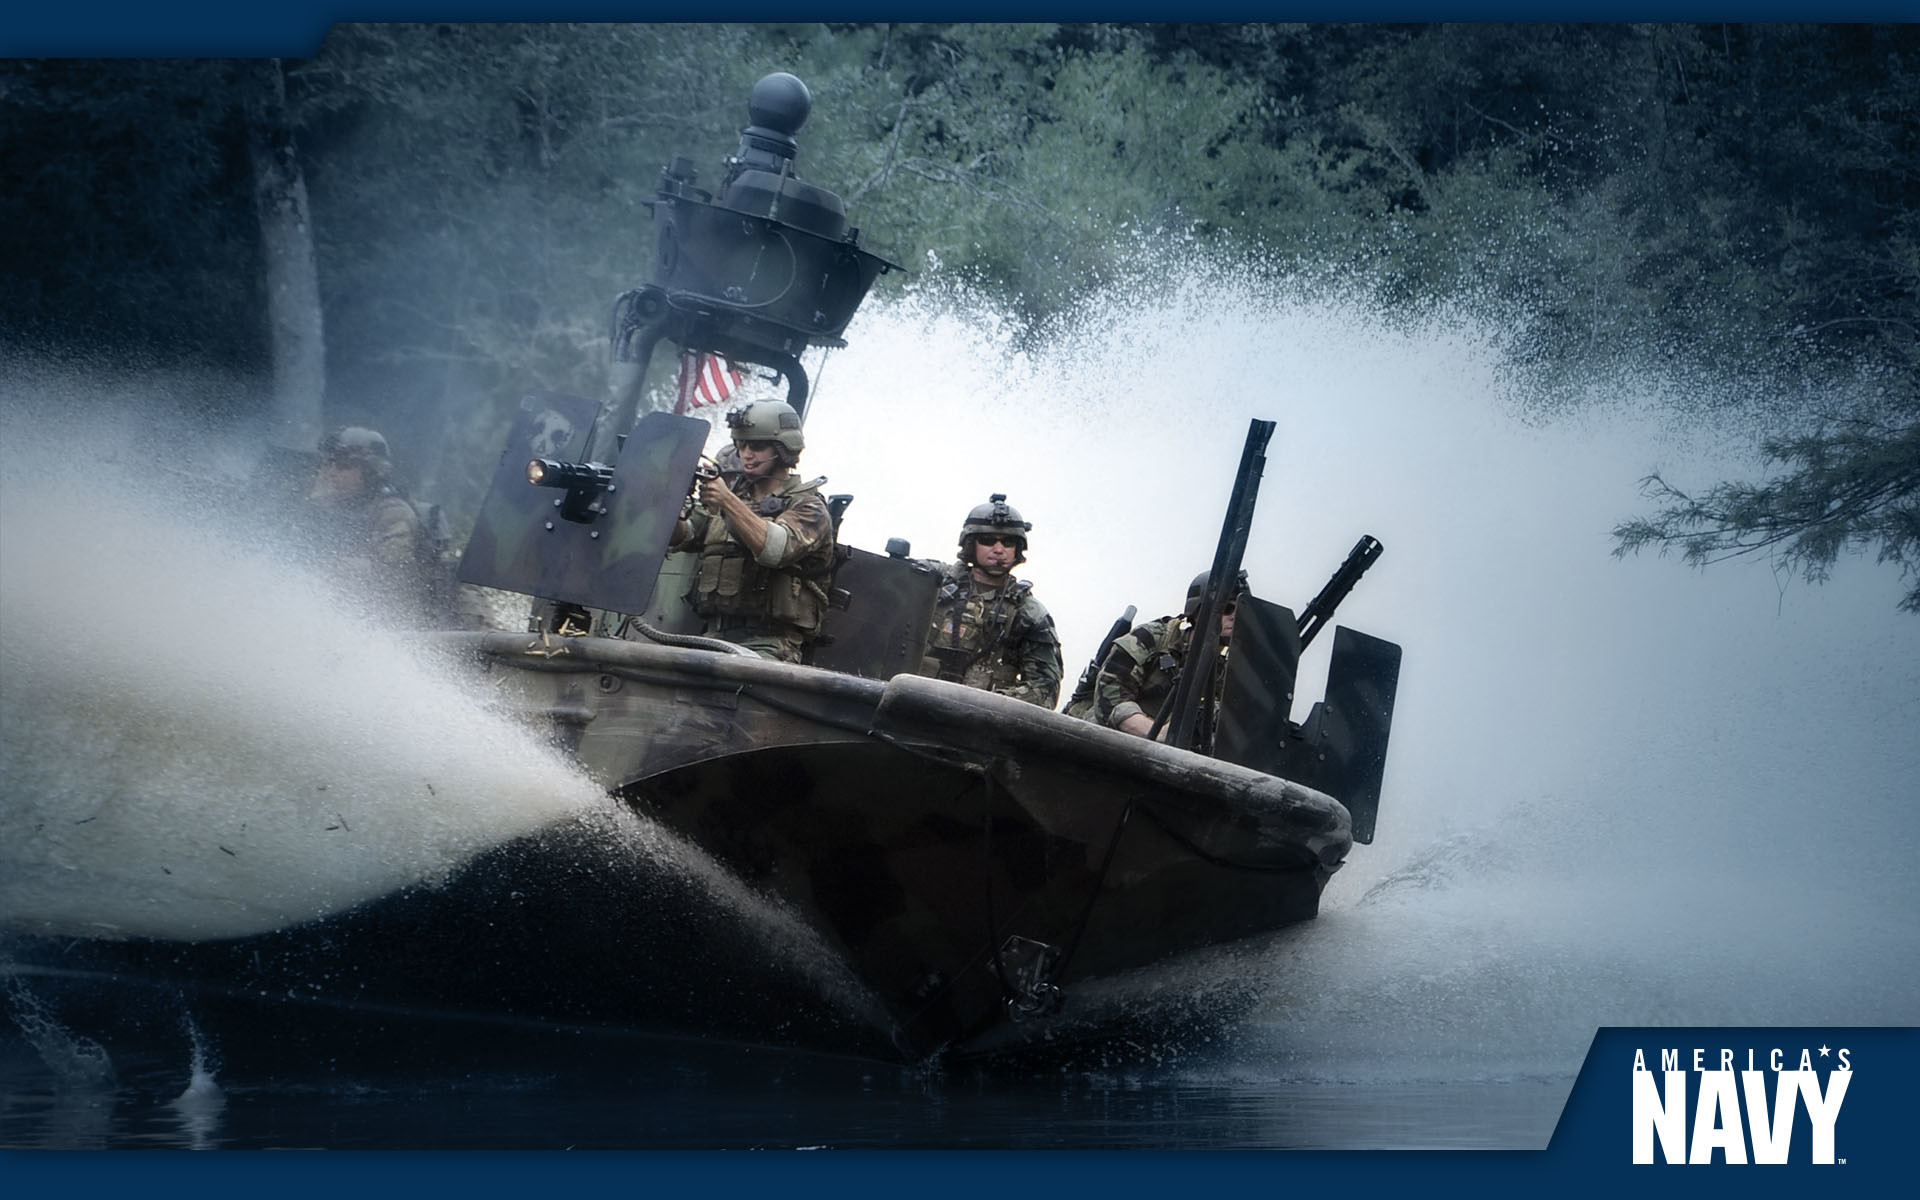 Navy Wallpaper Military Pictures: Navy Seal Wallpapers For Desktop (60+ Images